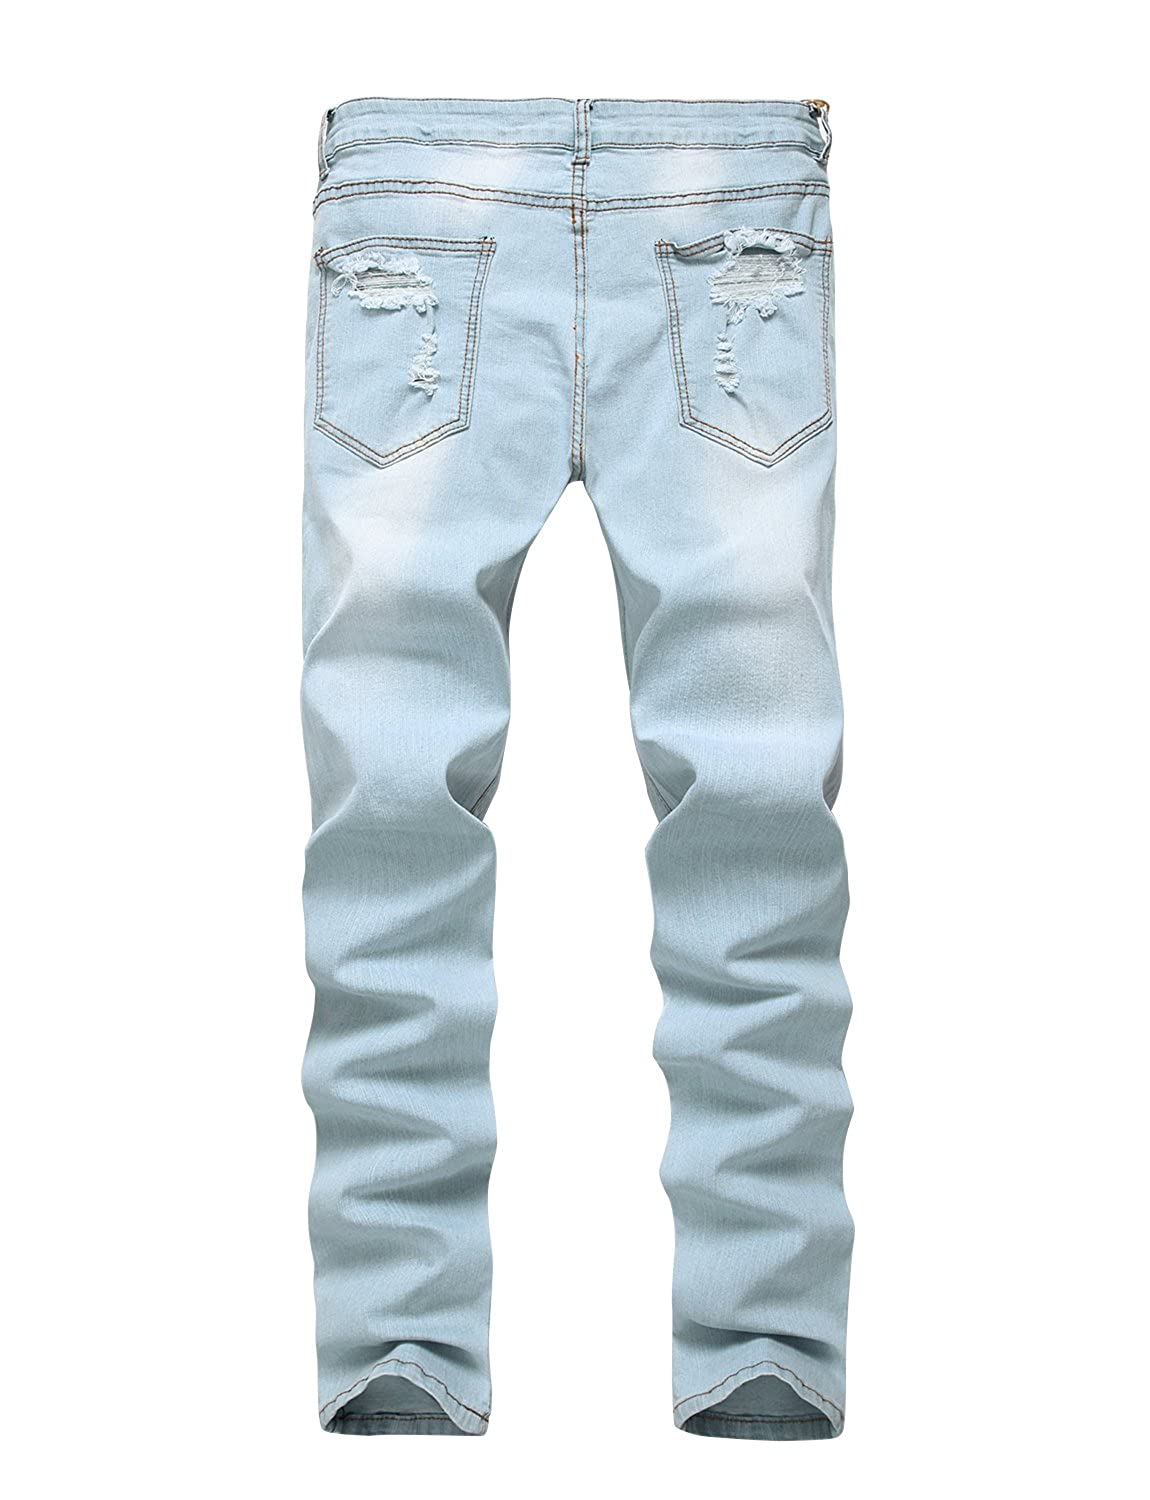 0dad9b5221b2 ANN Men's Ripped Destroyed Skinny Denim Jeans with Holes at Amazon Men's  Clothing store: